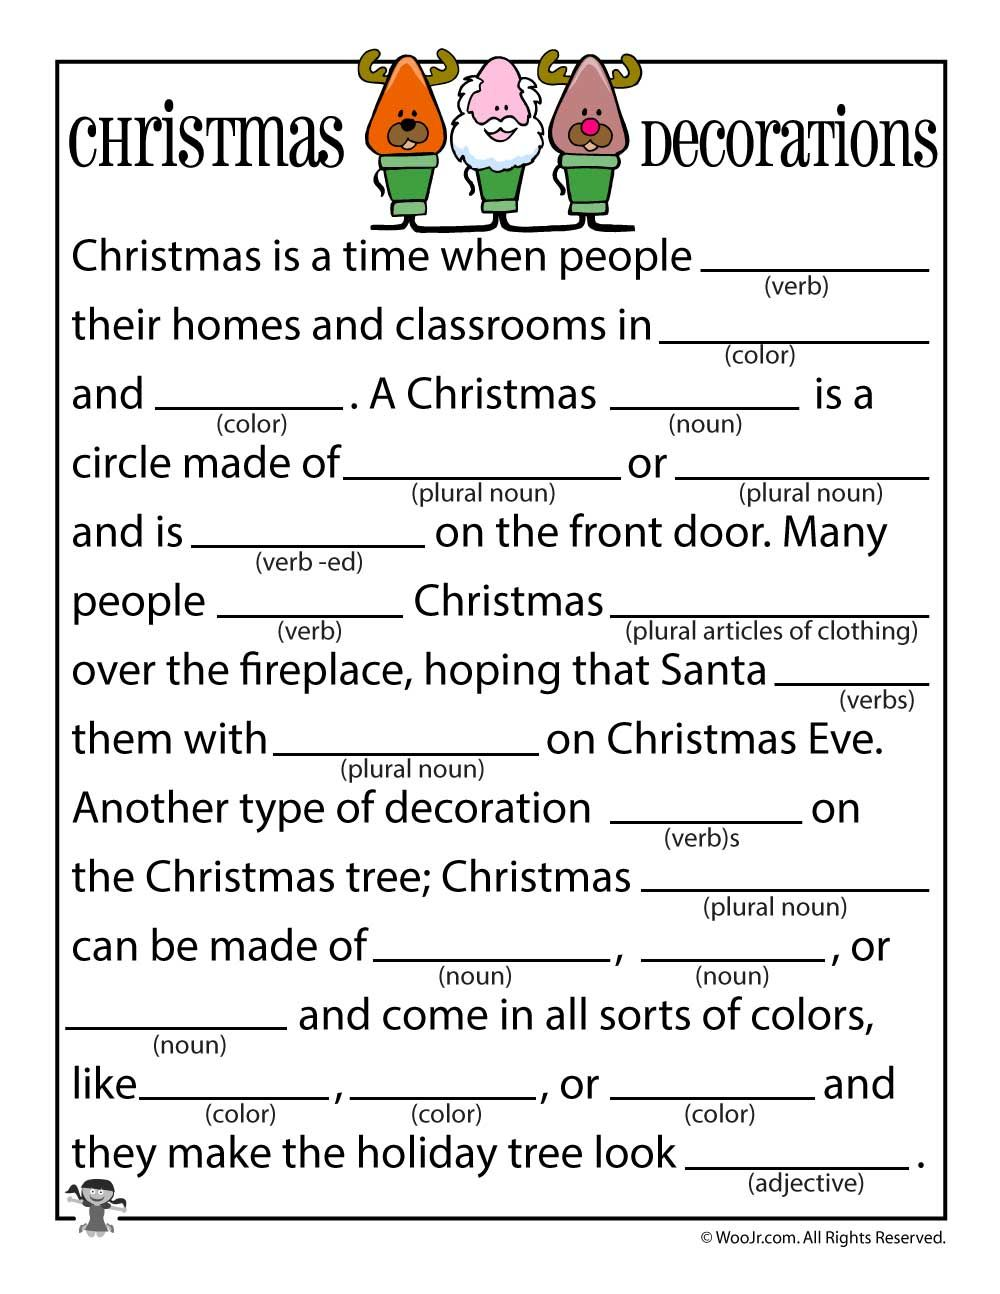 Christmas Decorations Mad Libs | Future References... Maybe ...